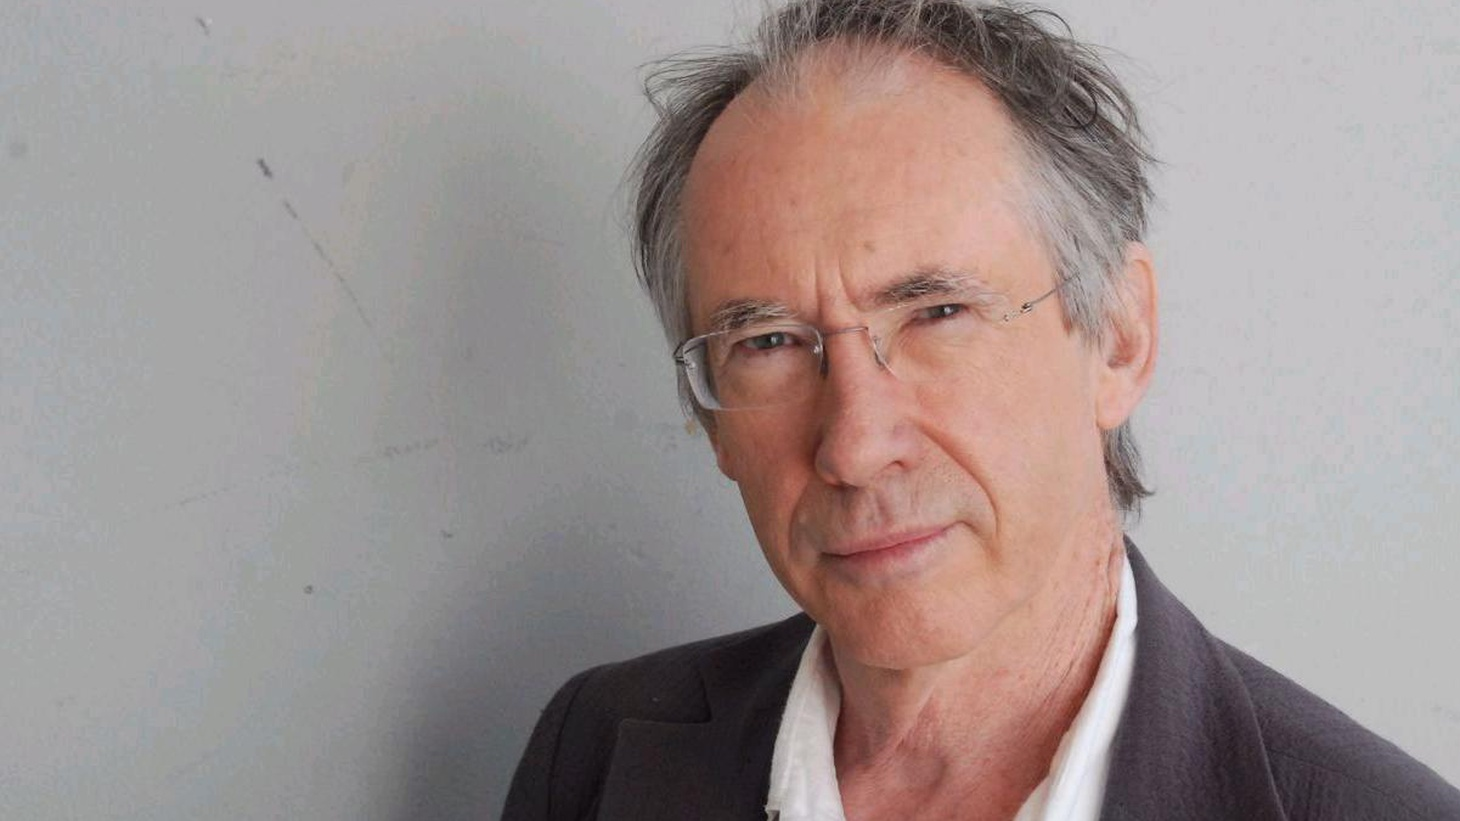 Solar (Doubleday)   Along the way in our conversation about bad morals and good intentions, Ian McEwan dabbles in the background subjects of his new novel...